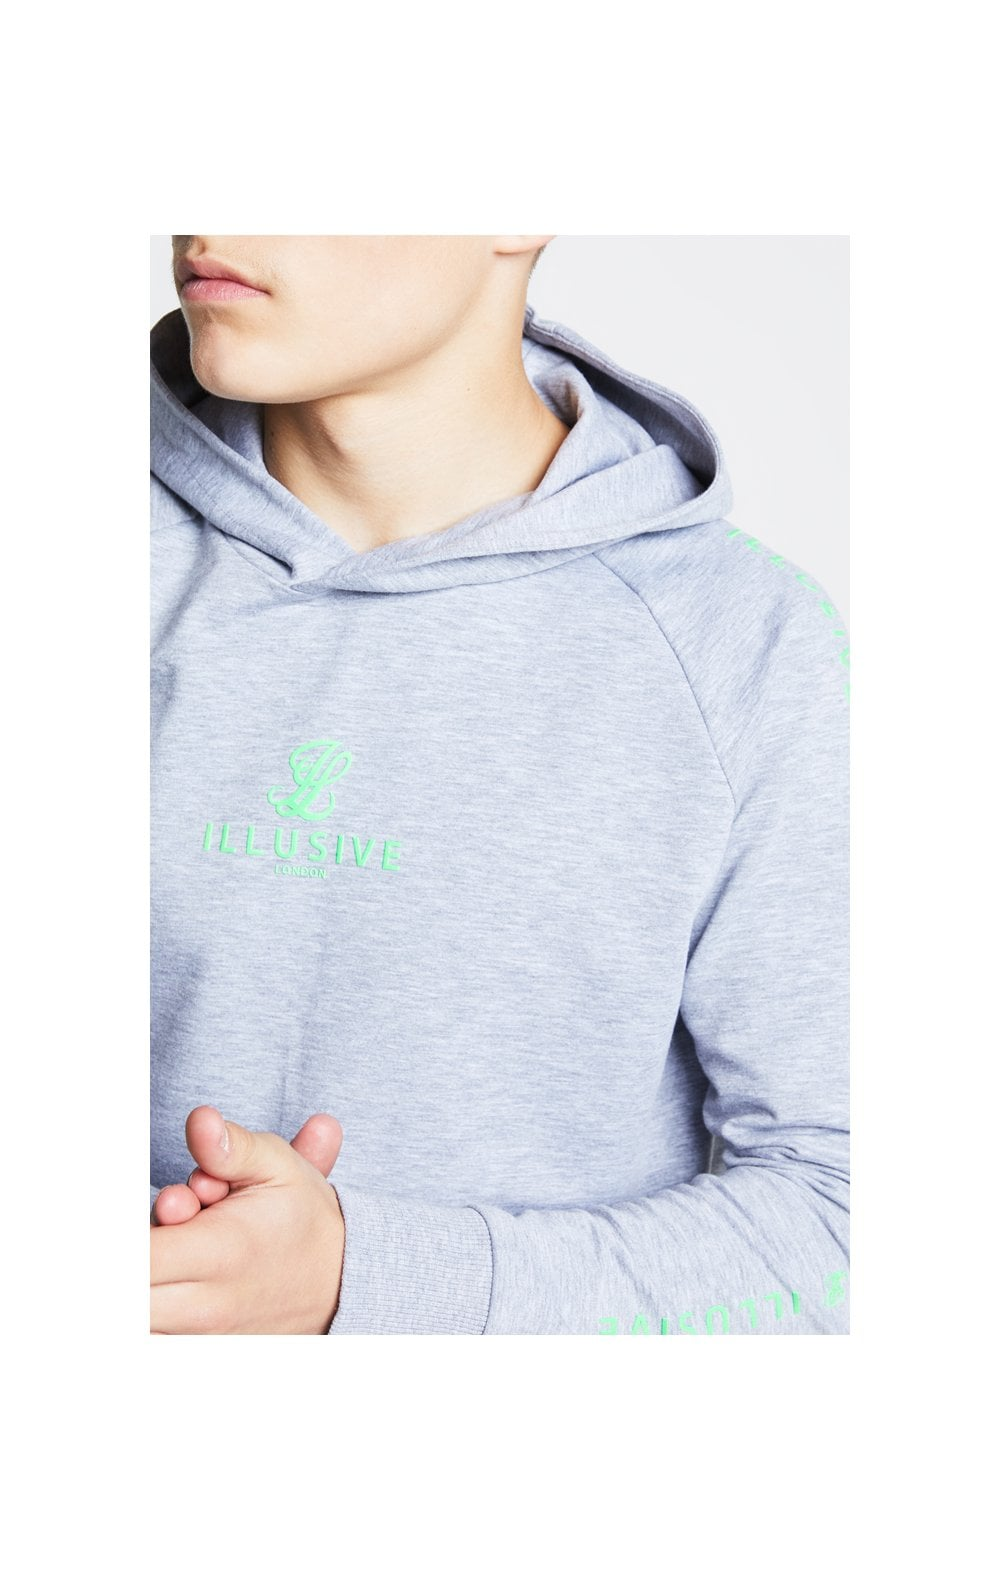 Illusive London Overhead Hoodie - Grey & Neon Green (1)